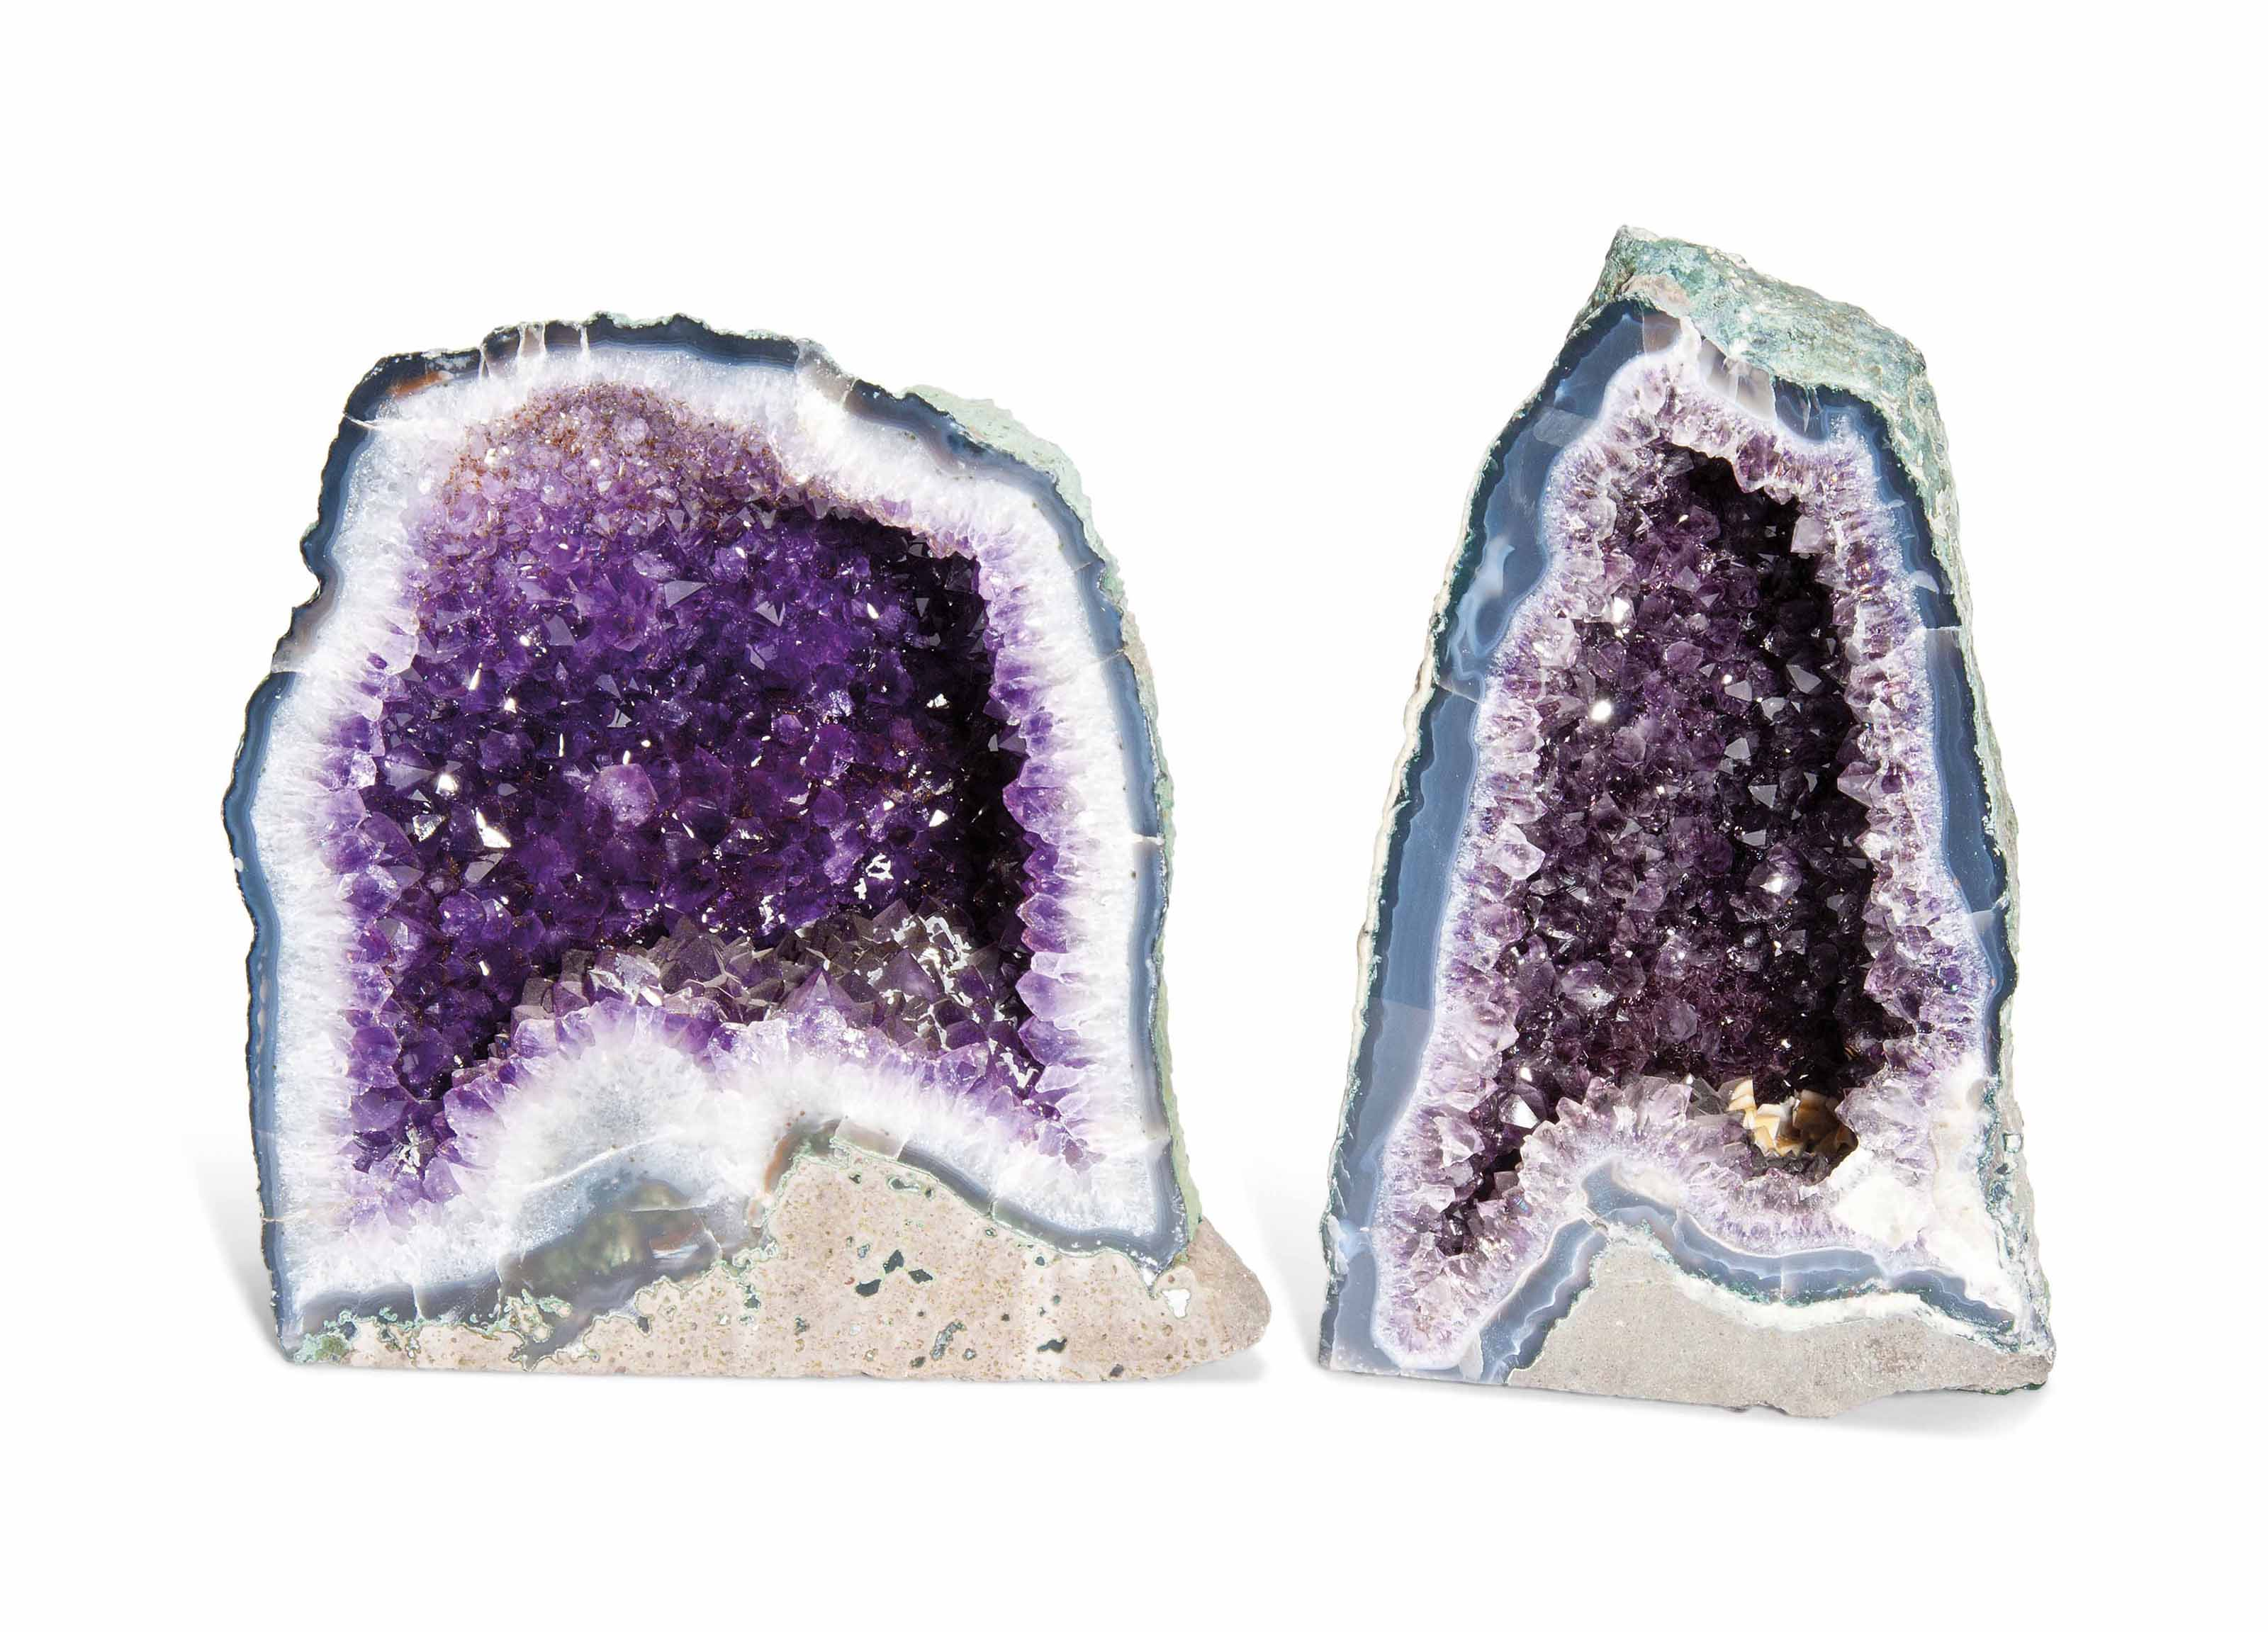 TWO AMETHYST GEODES